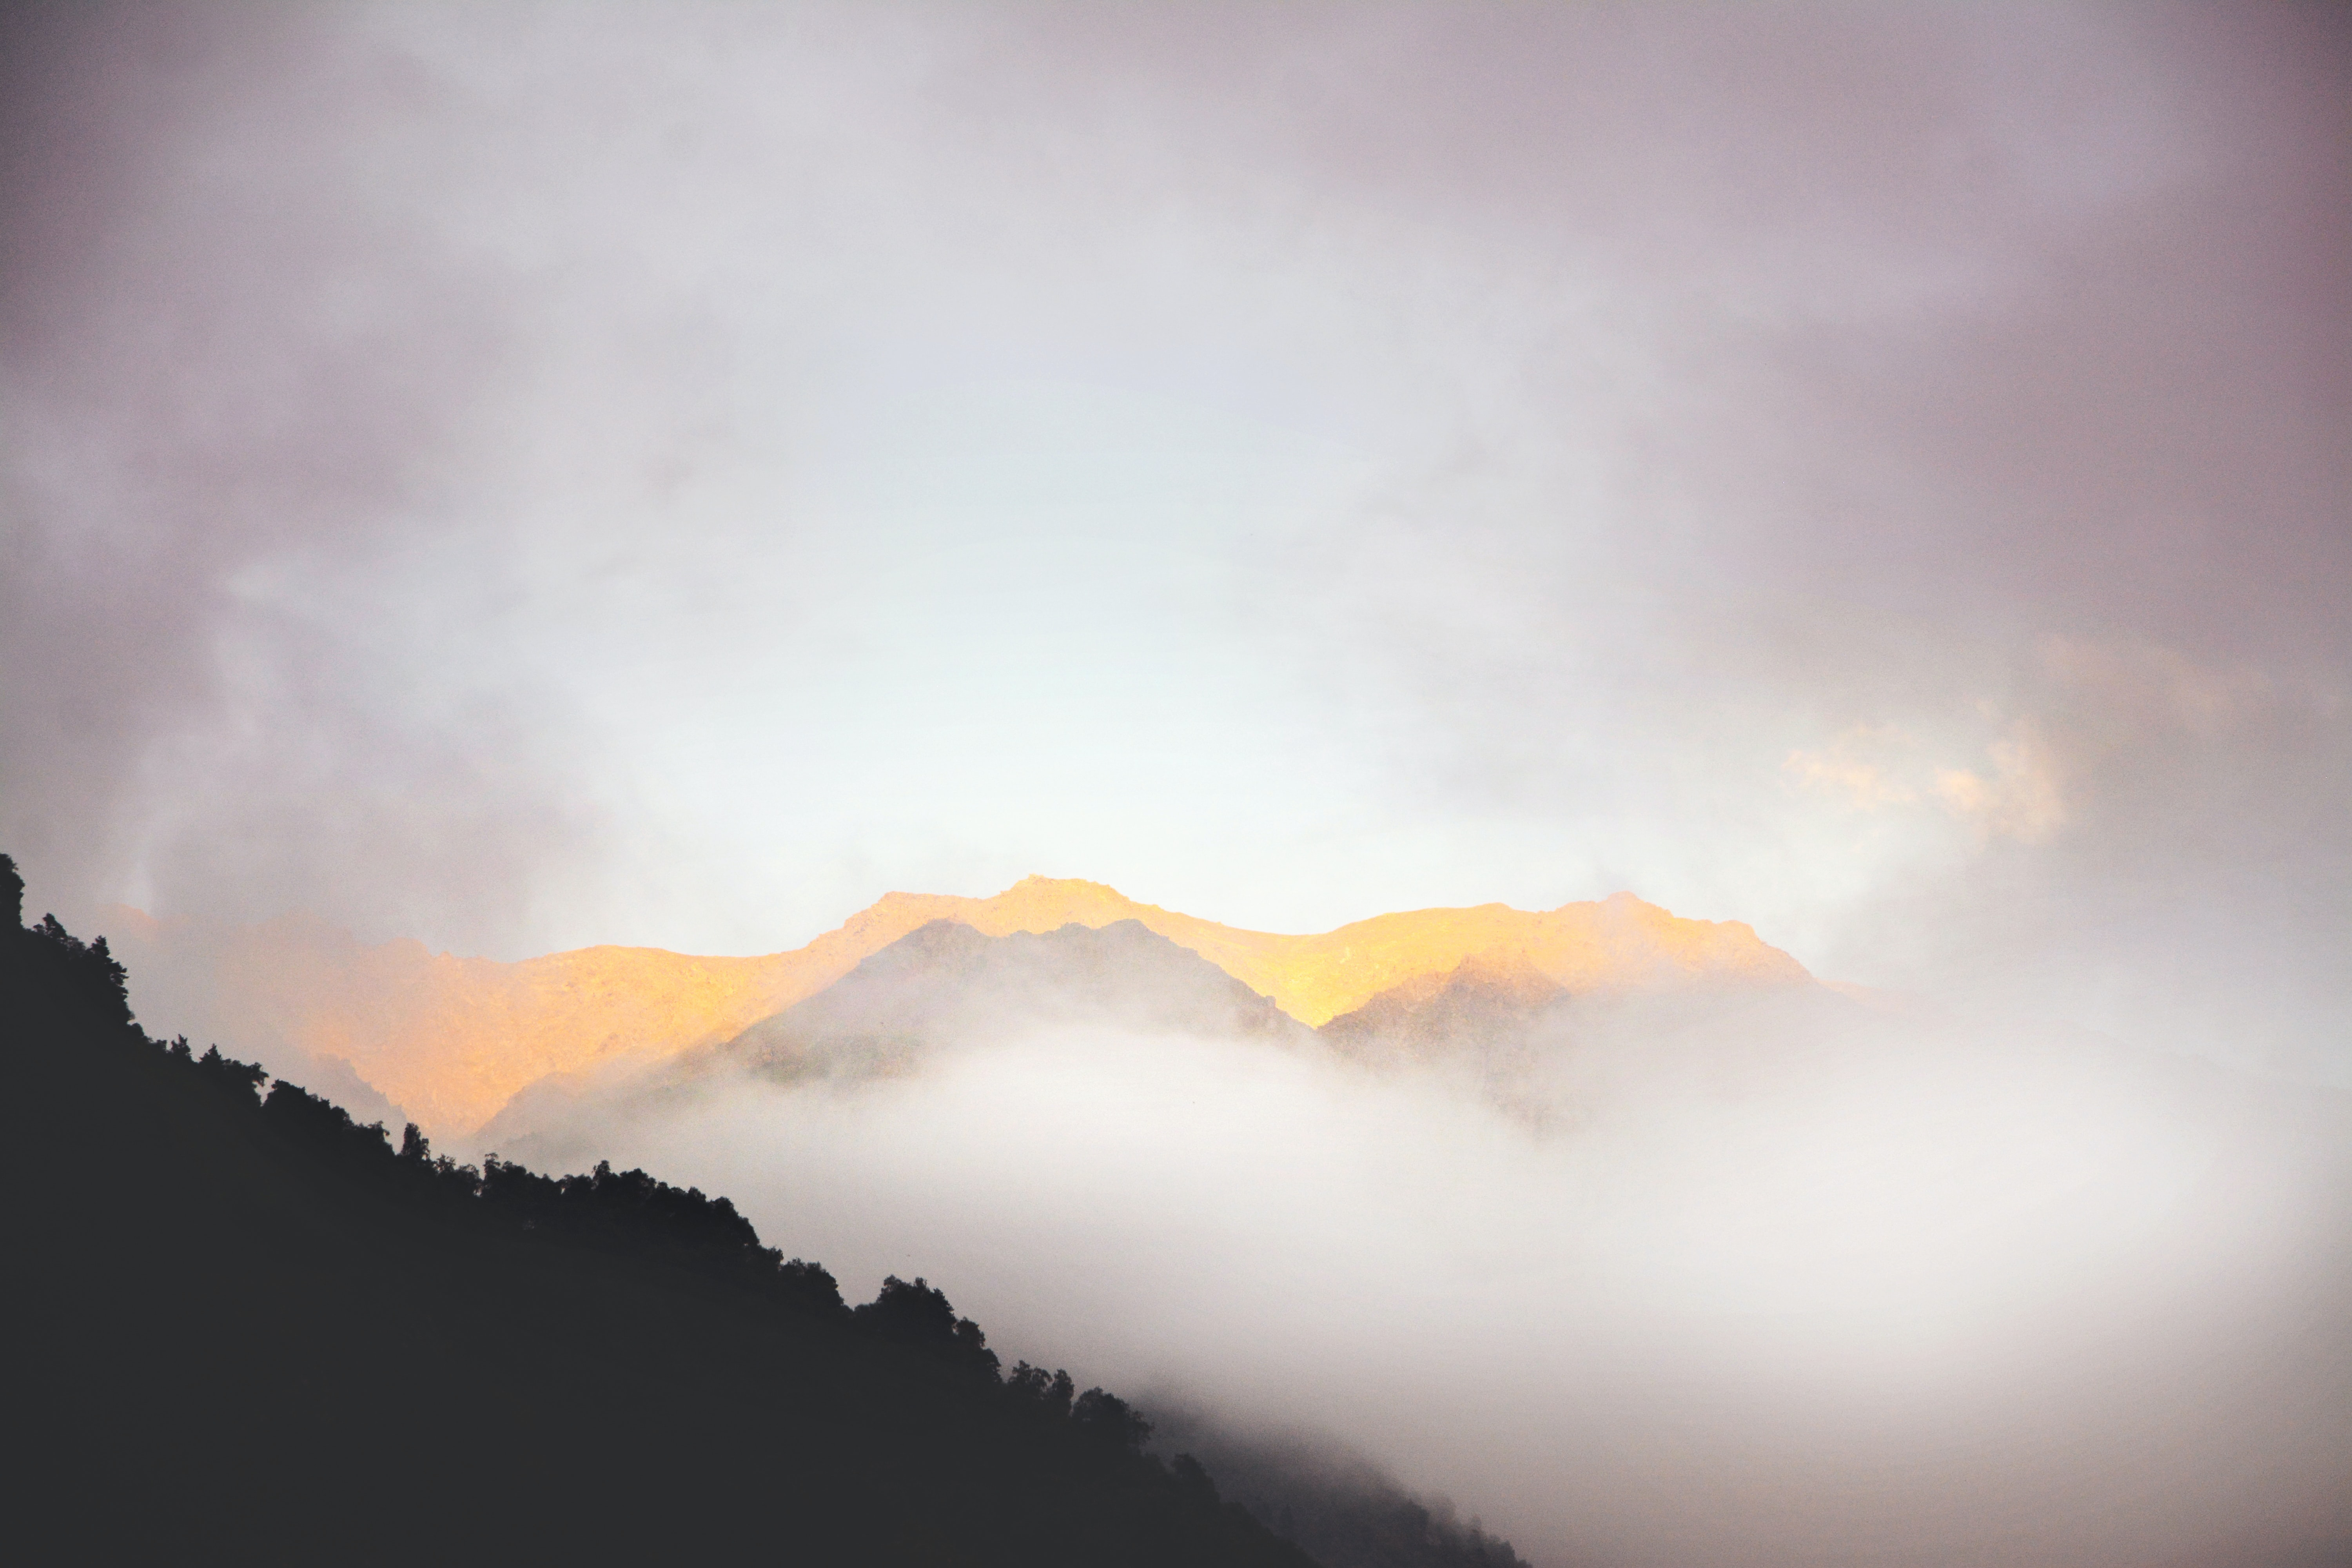 Fog covers misty mountains in Georgia